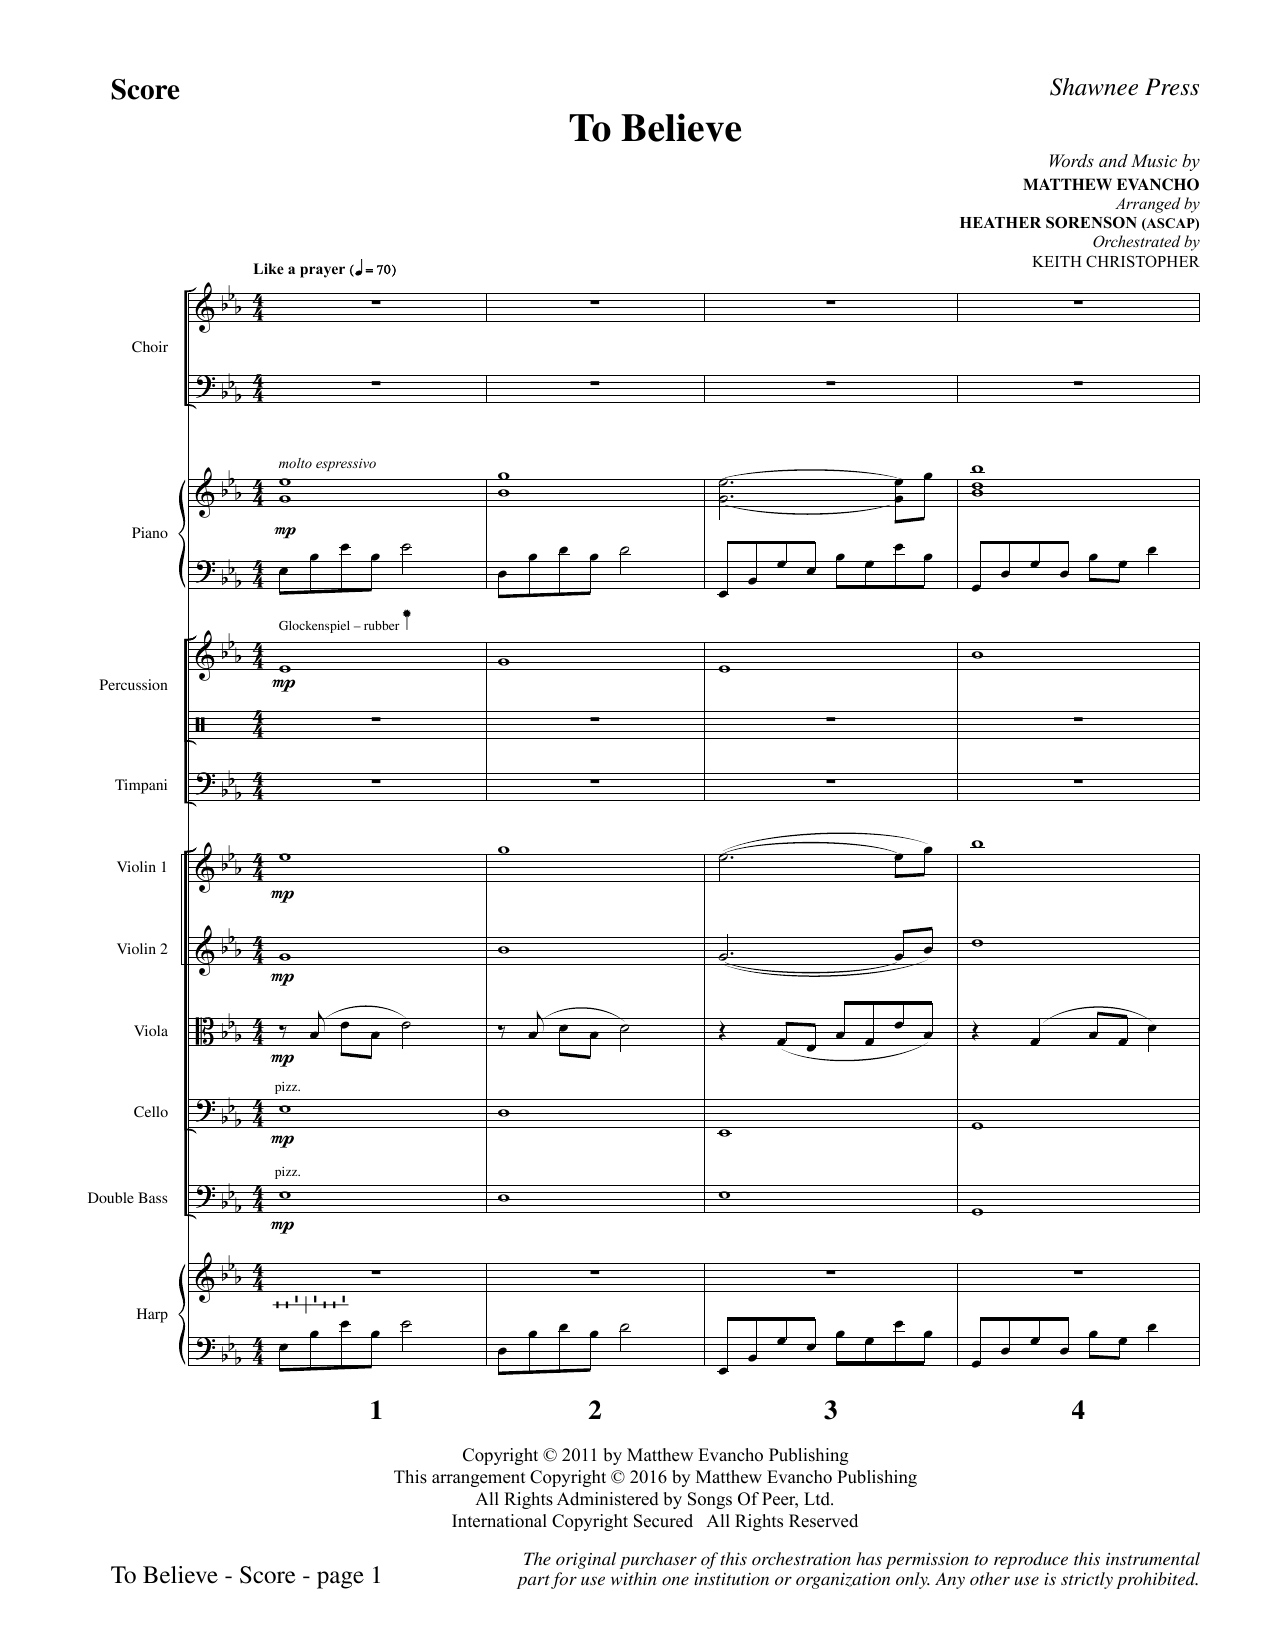 Matthew Evancho - To Believe - Full Score